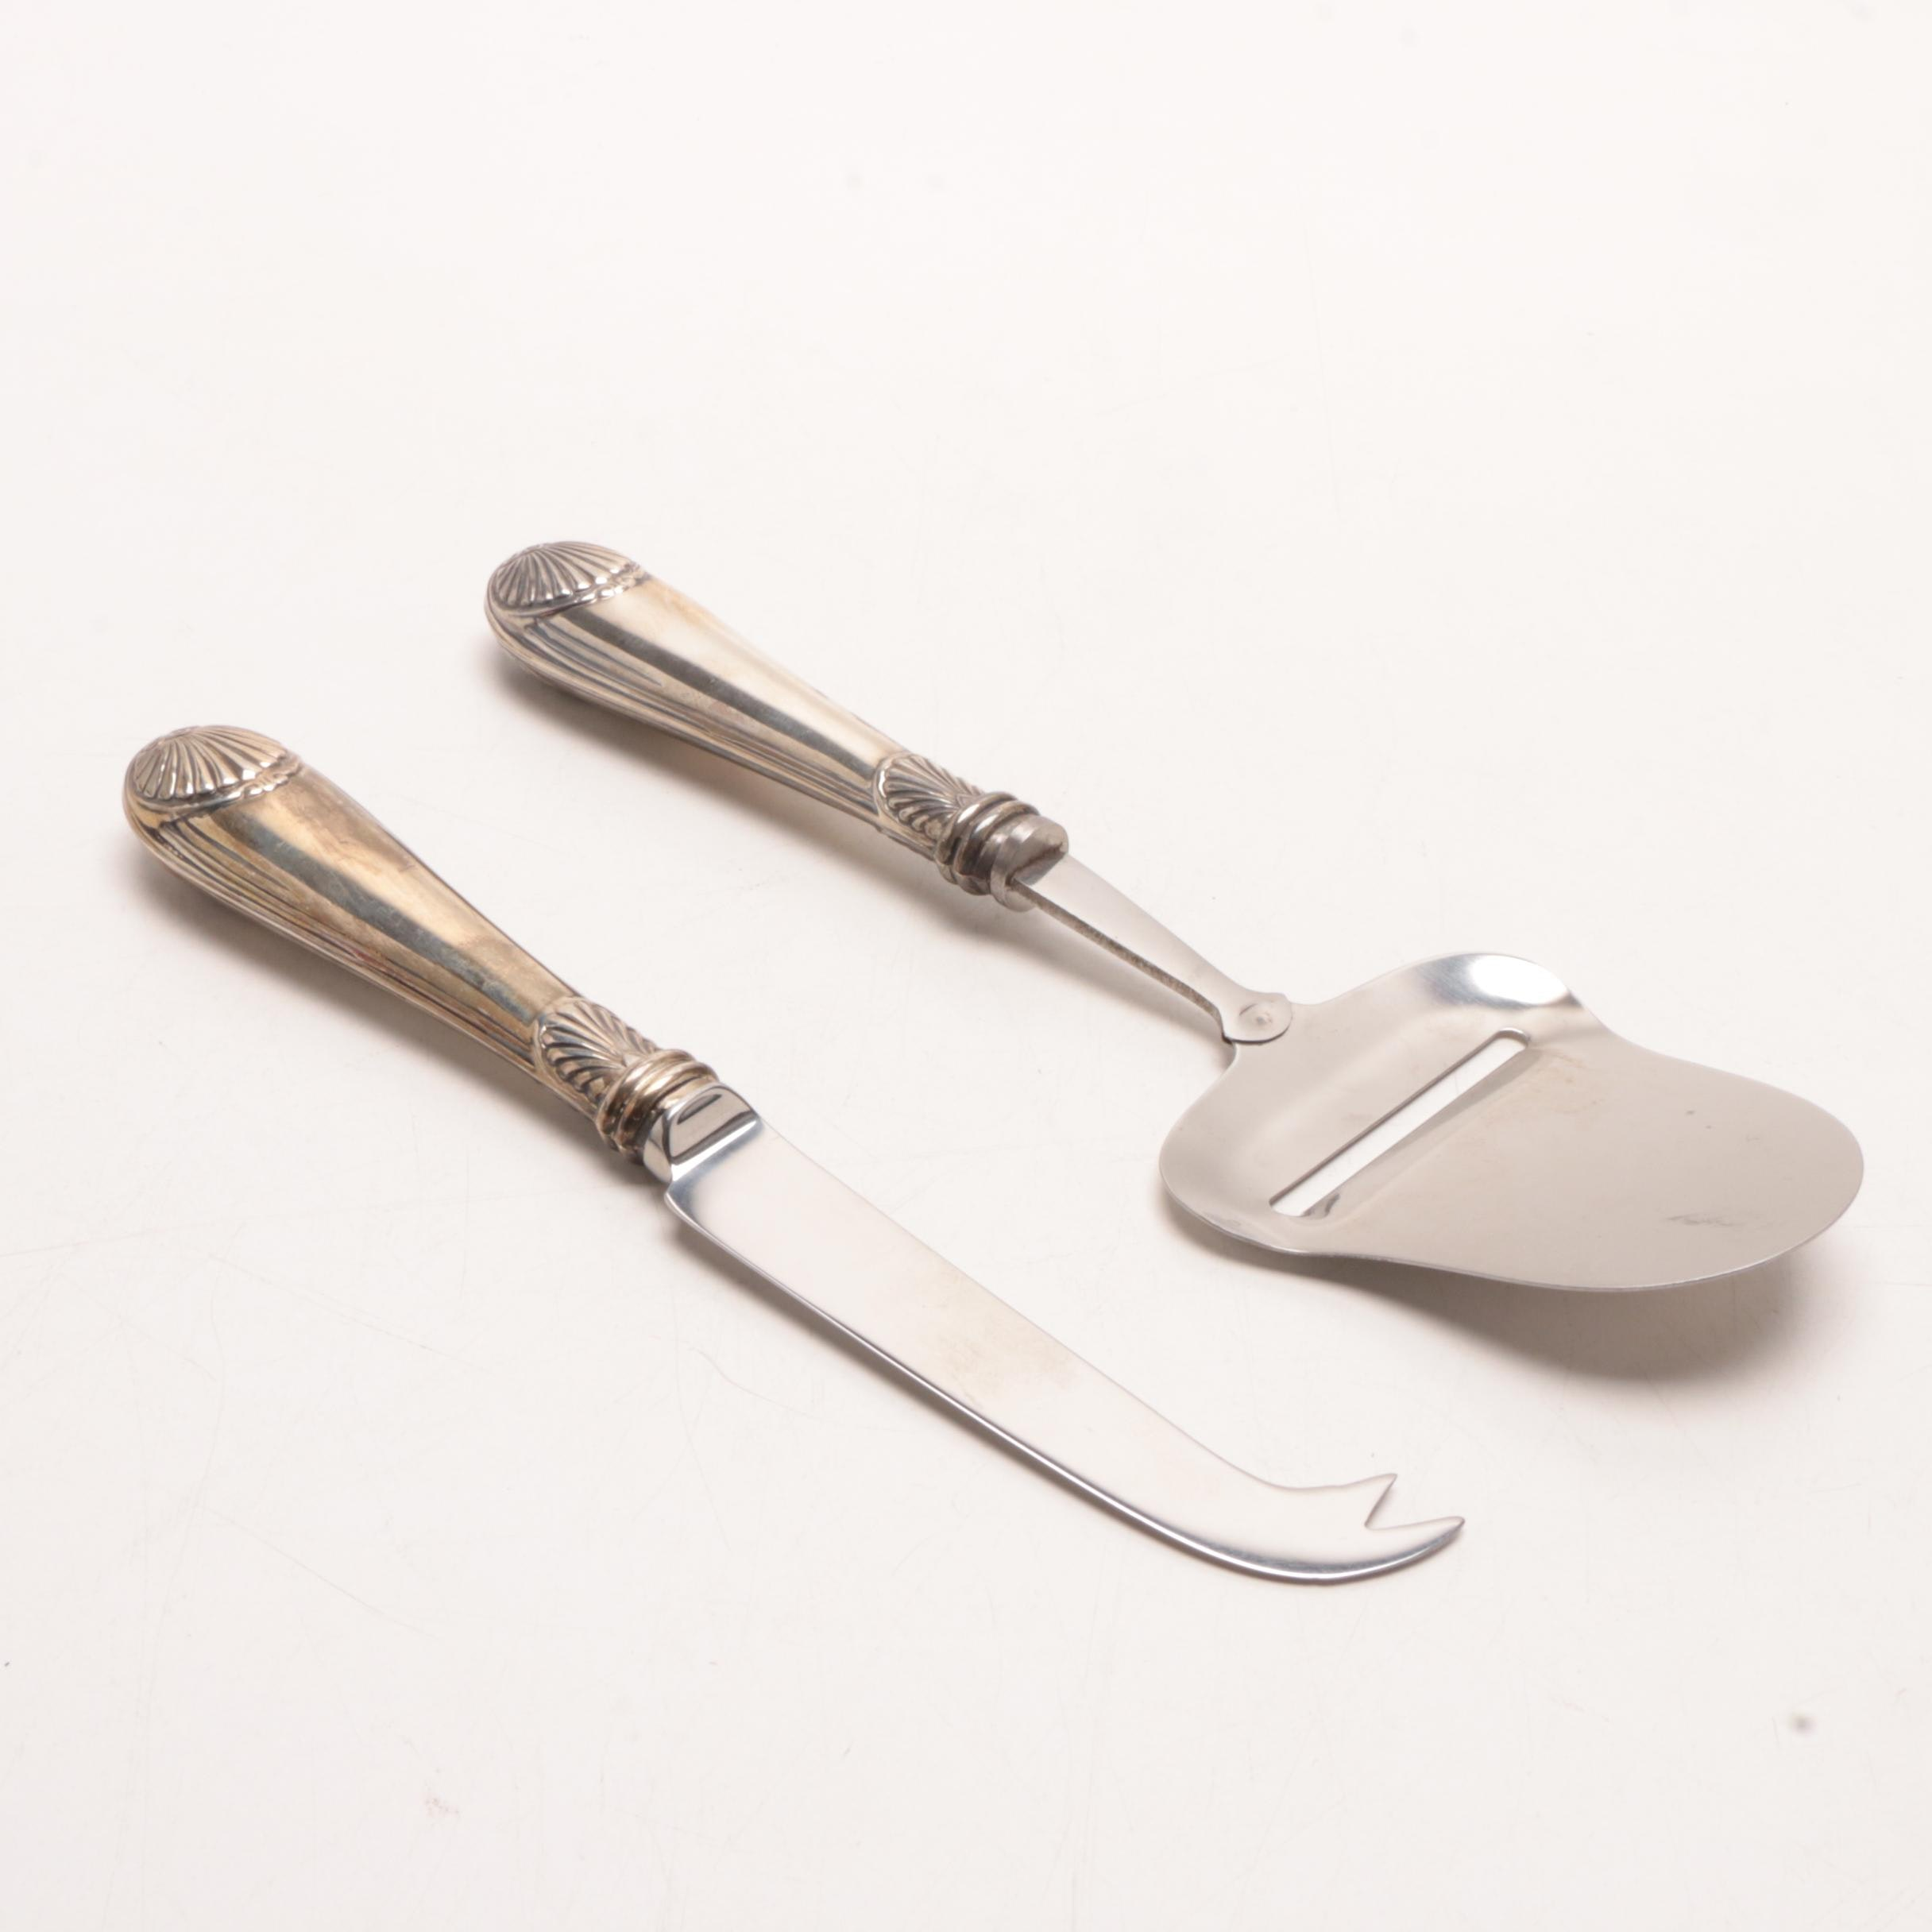 Vintage Cheese Serving Utensils with Sterling Silver Handles